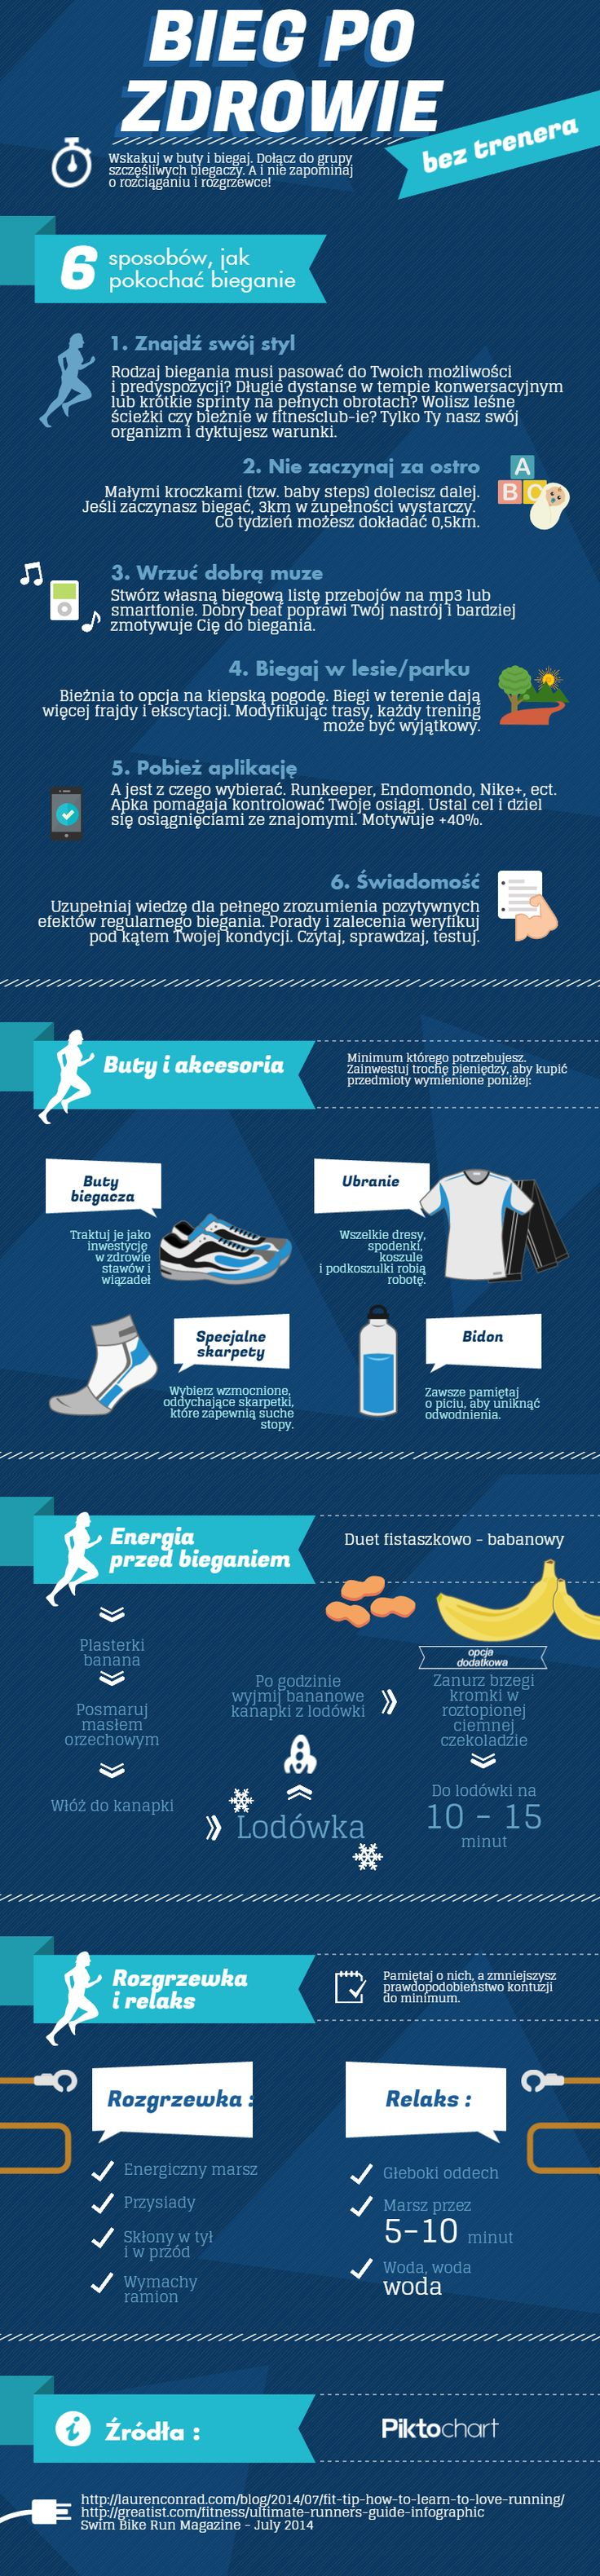 Runners - infographic